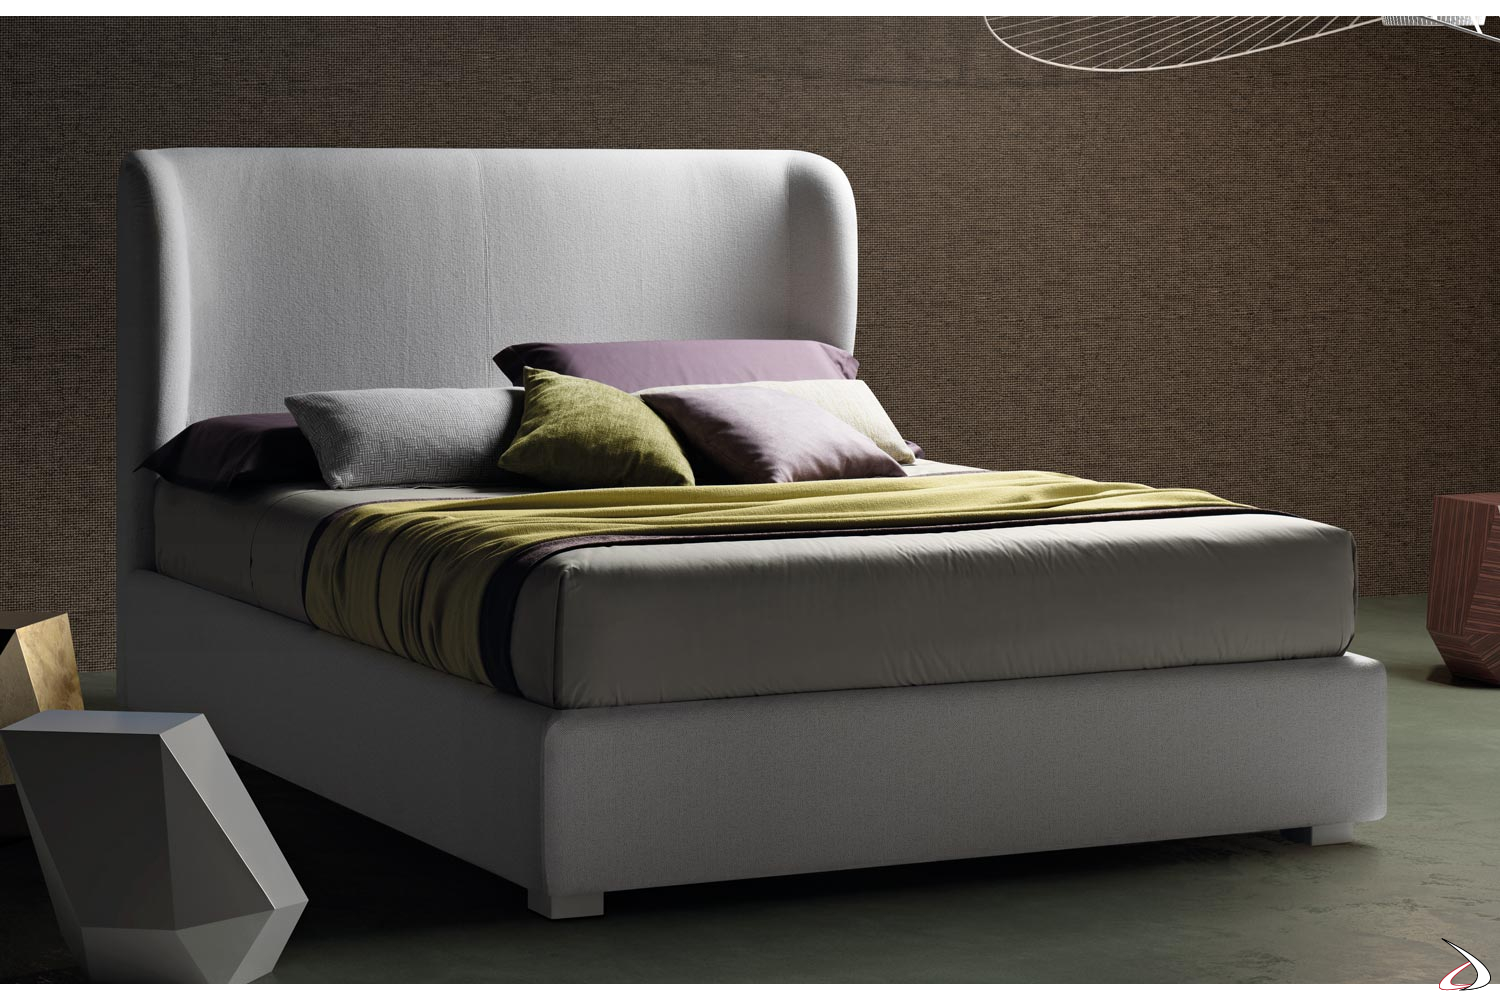 Testata Letto Moderna.Modern Bed With Alby Curved Headboard Toparredi Arredo Design